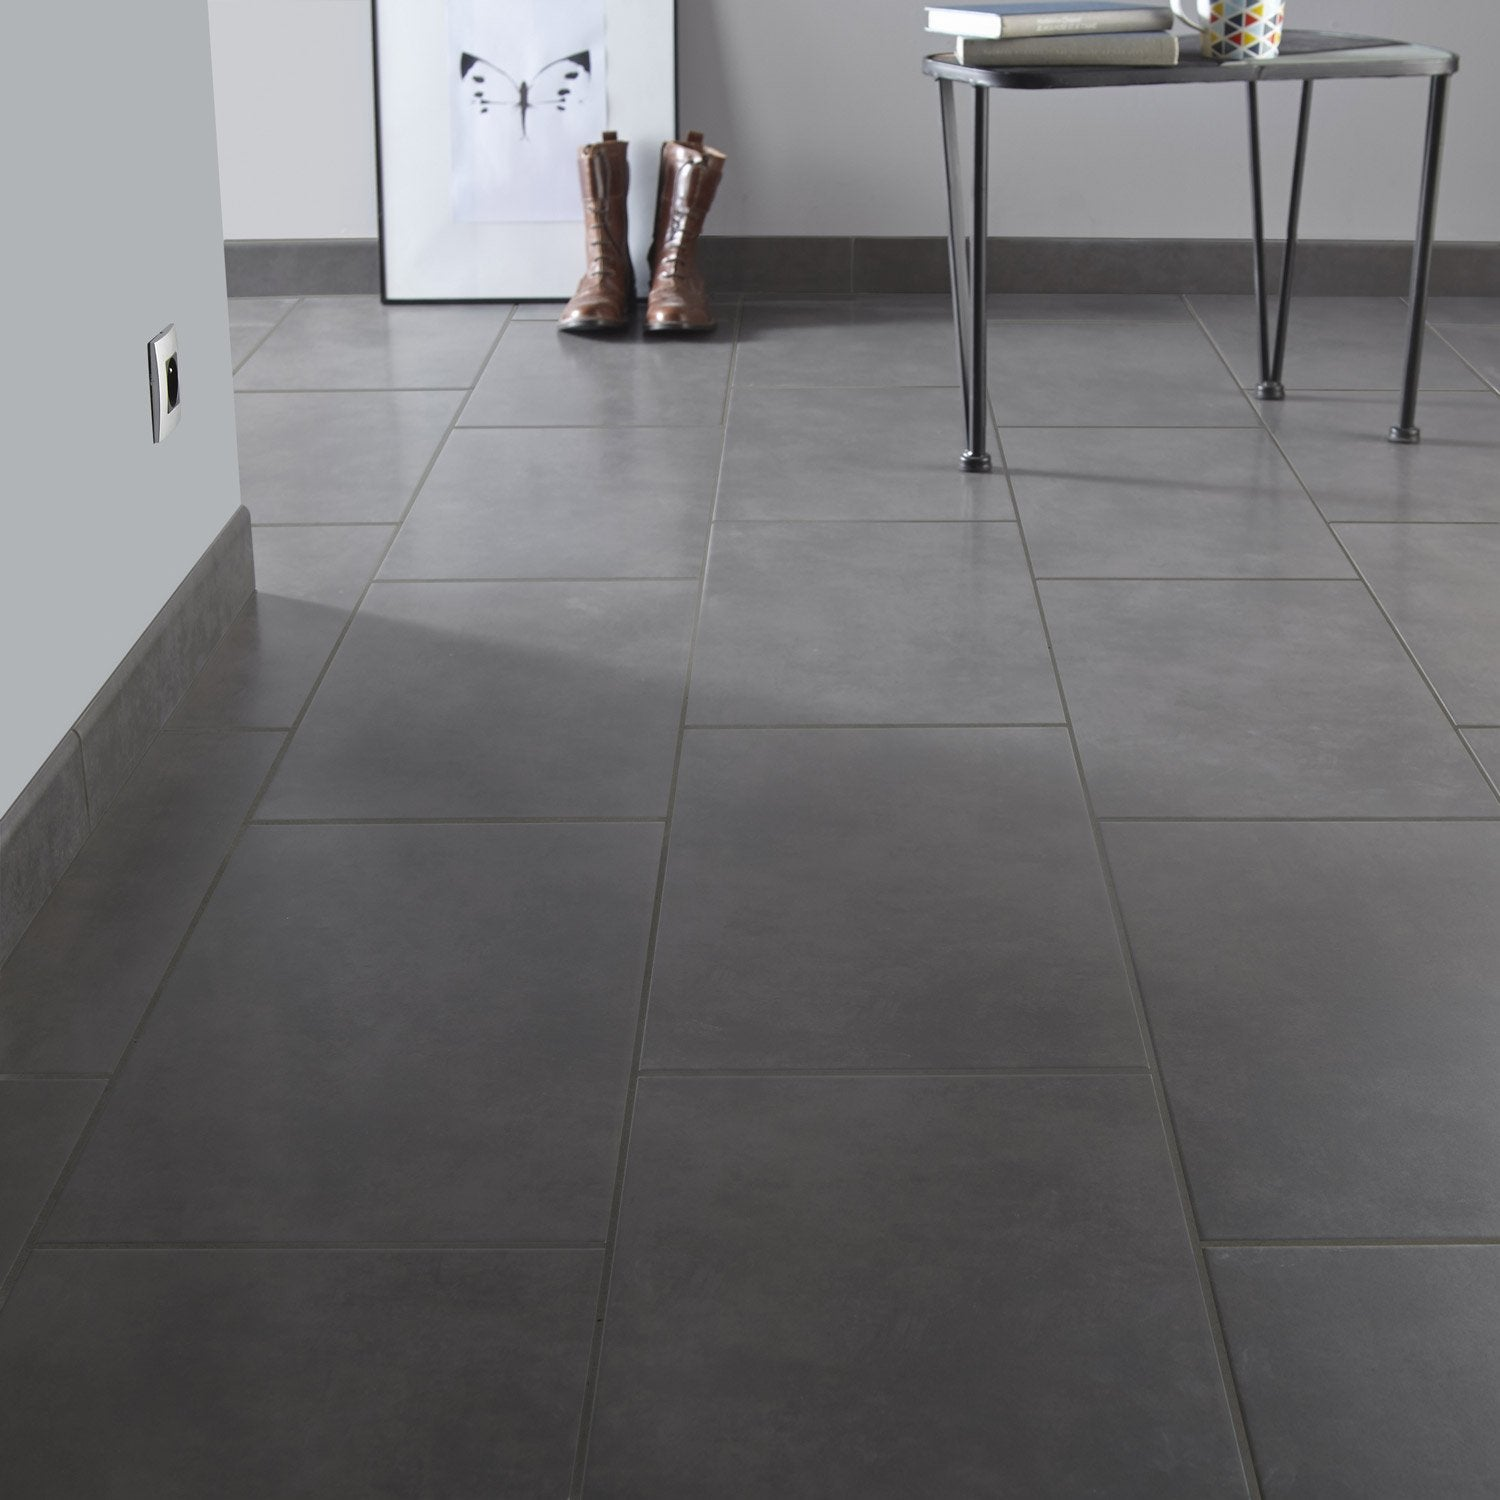 Carrelage sol et mur anthracite effet b ton blackpool for Carrelage 45x45 gris anthracite